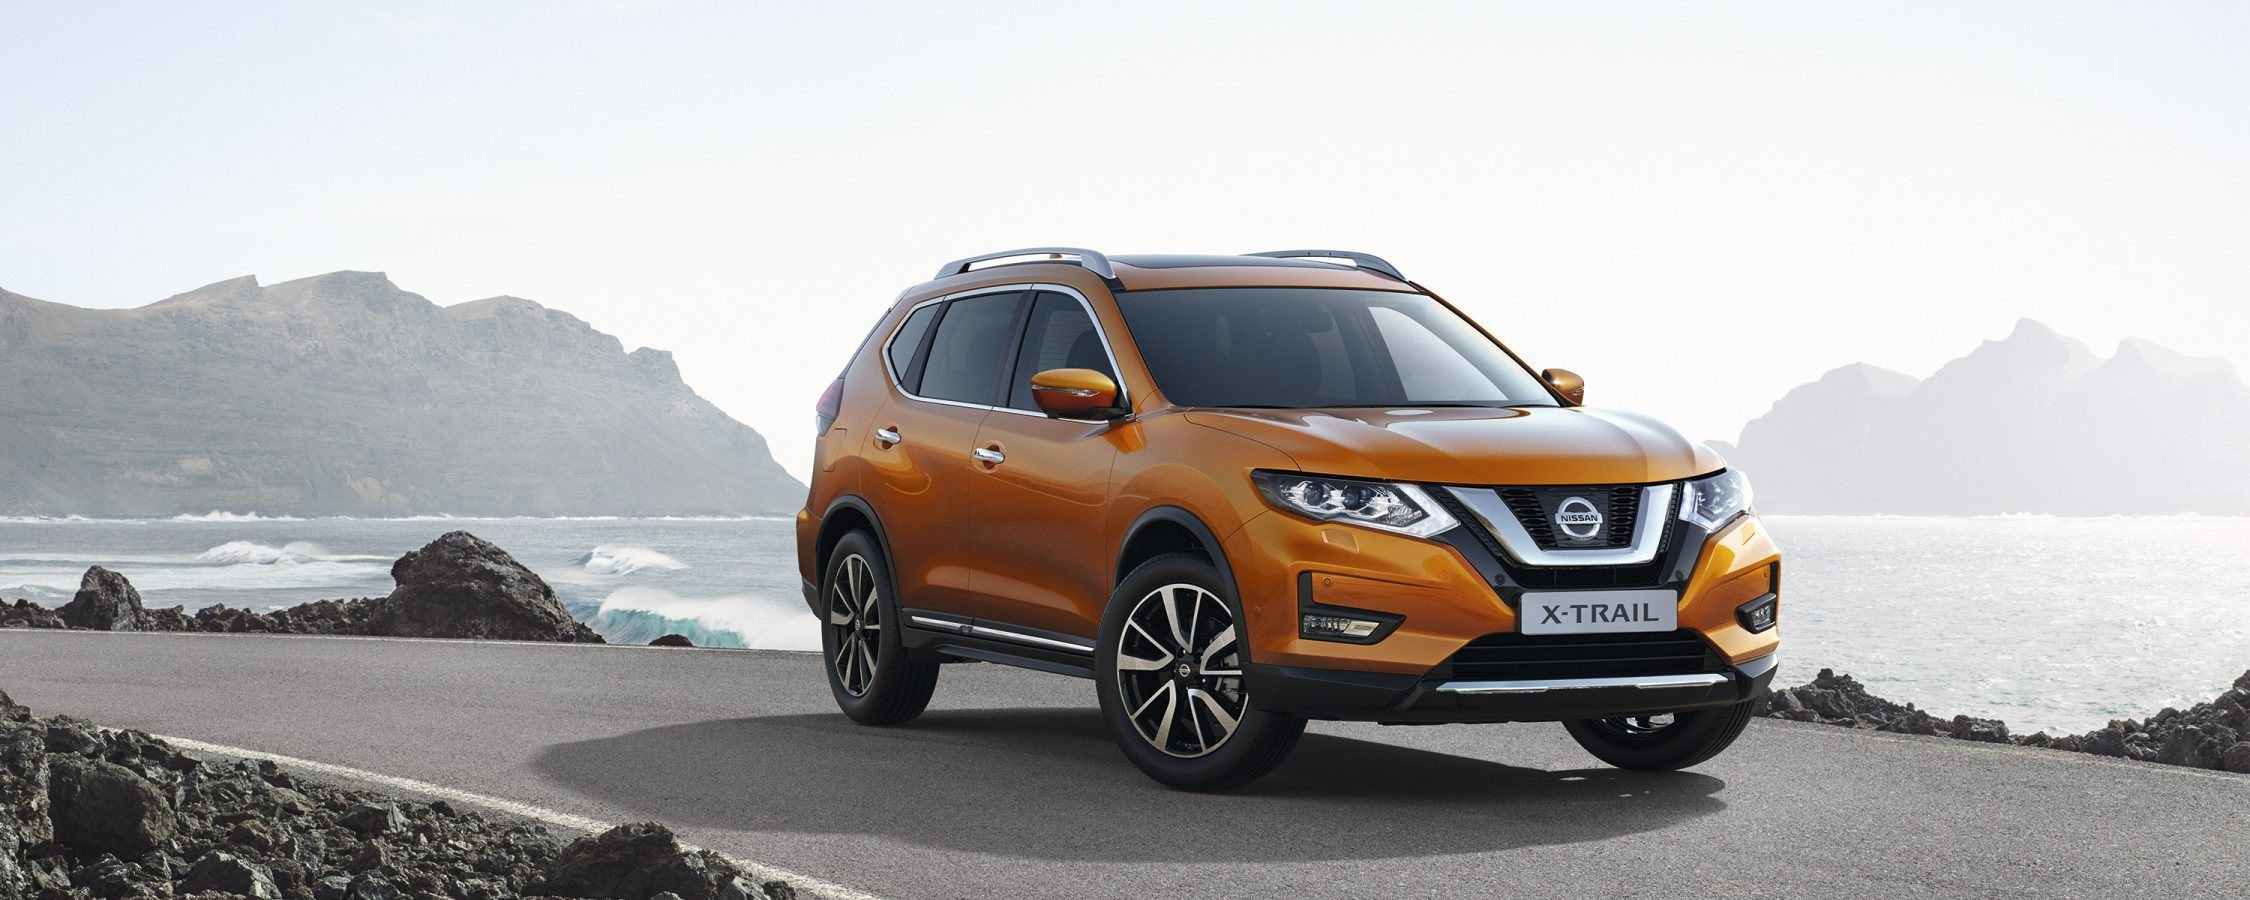 Nissan X-Trail Outside